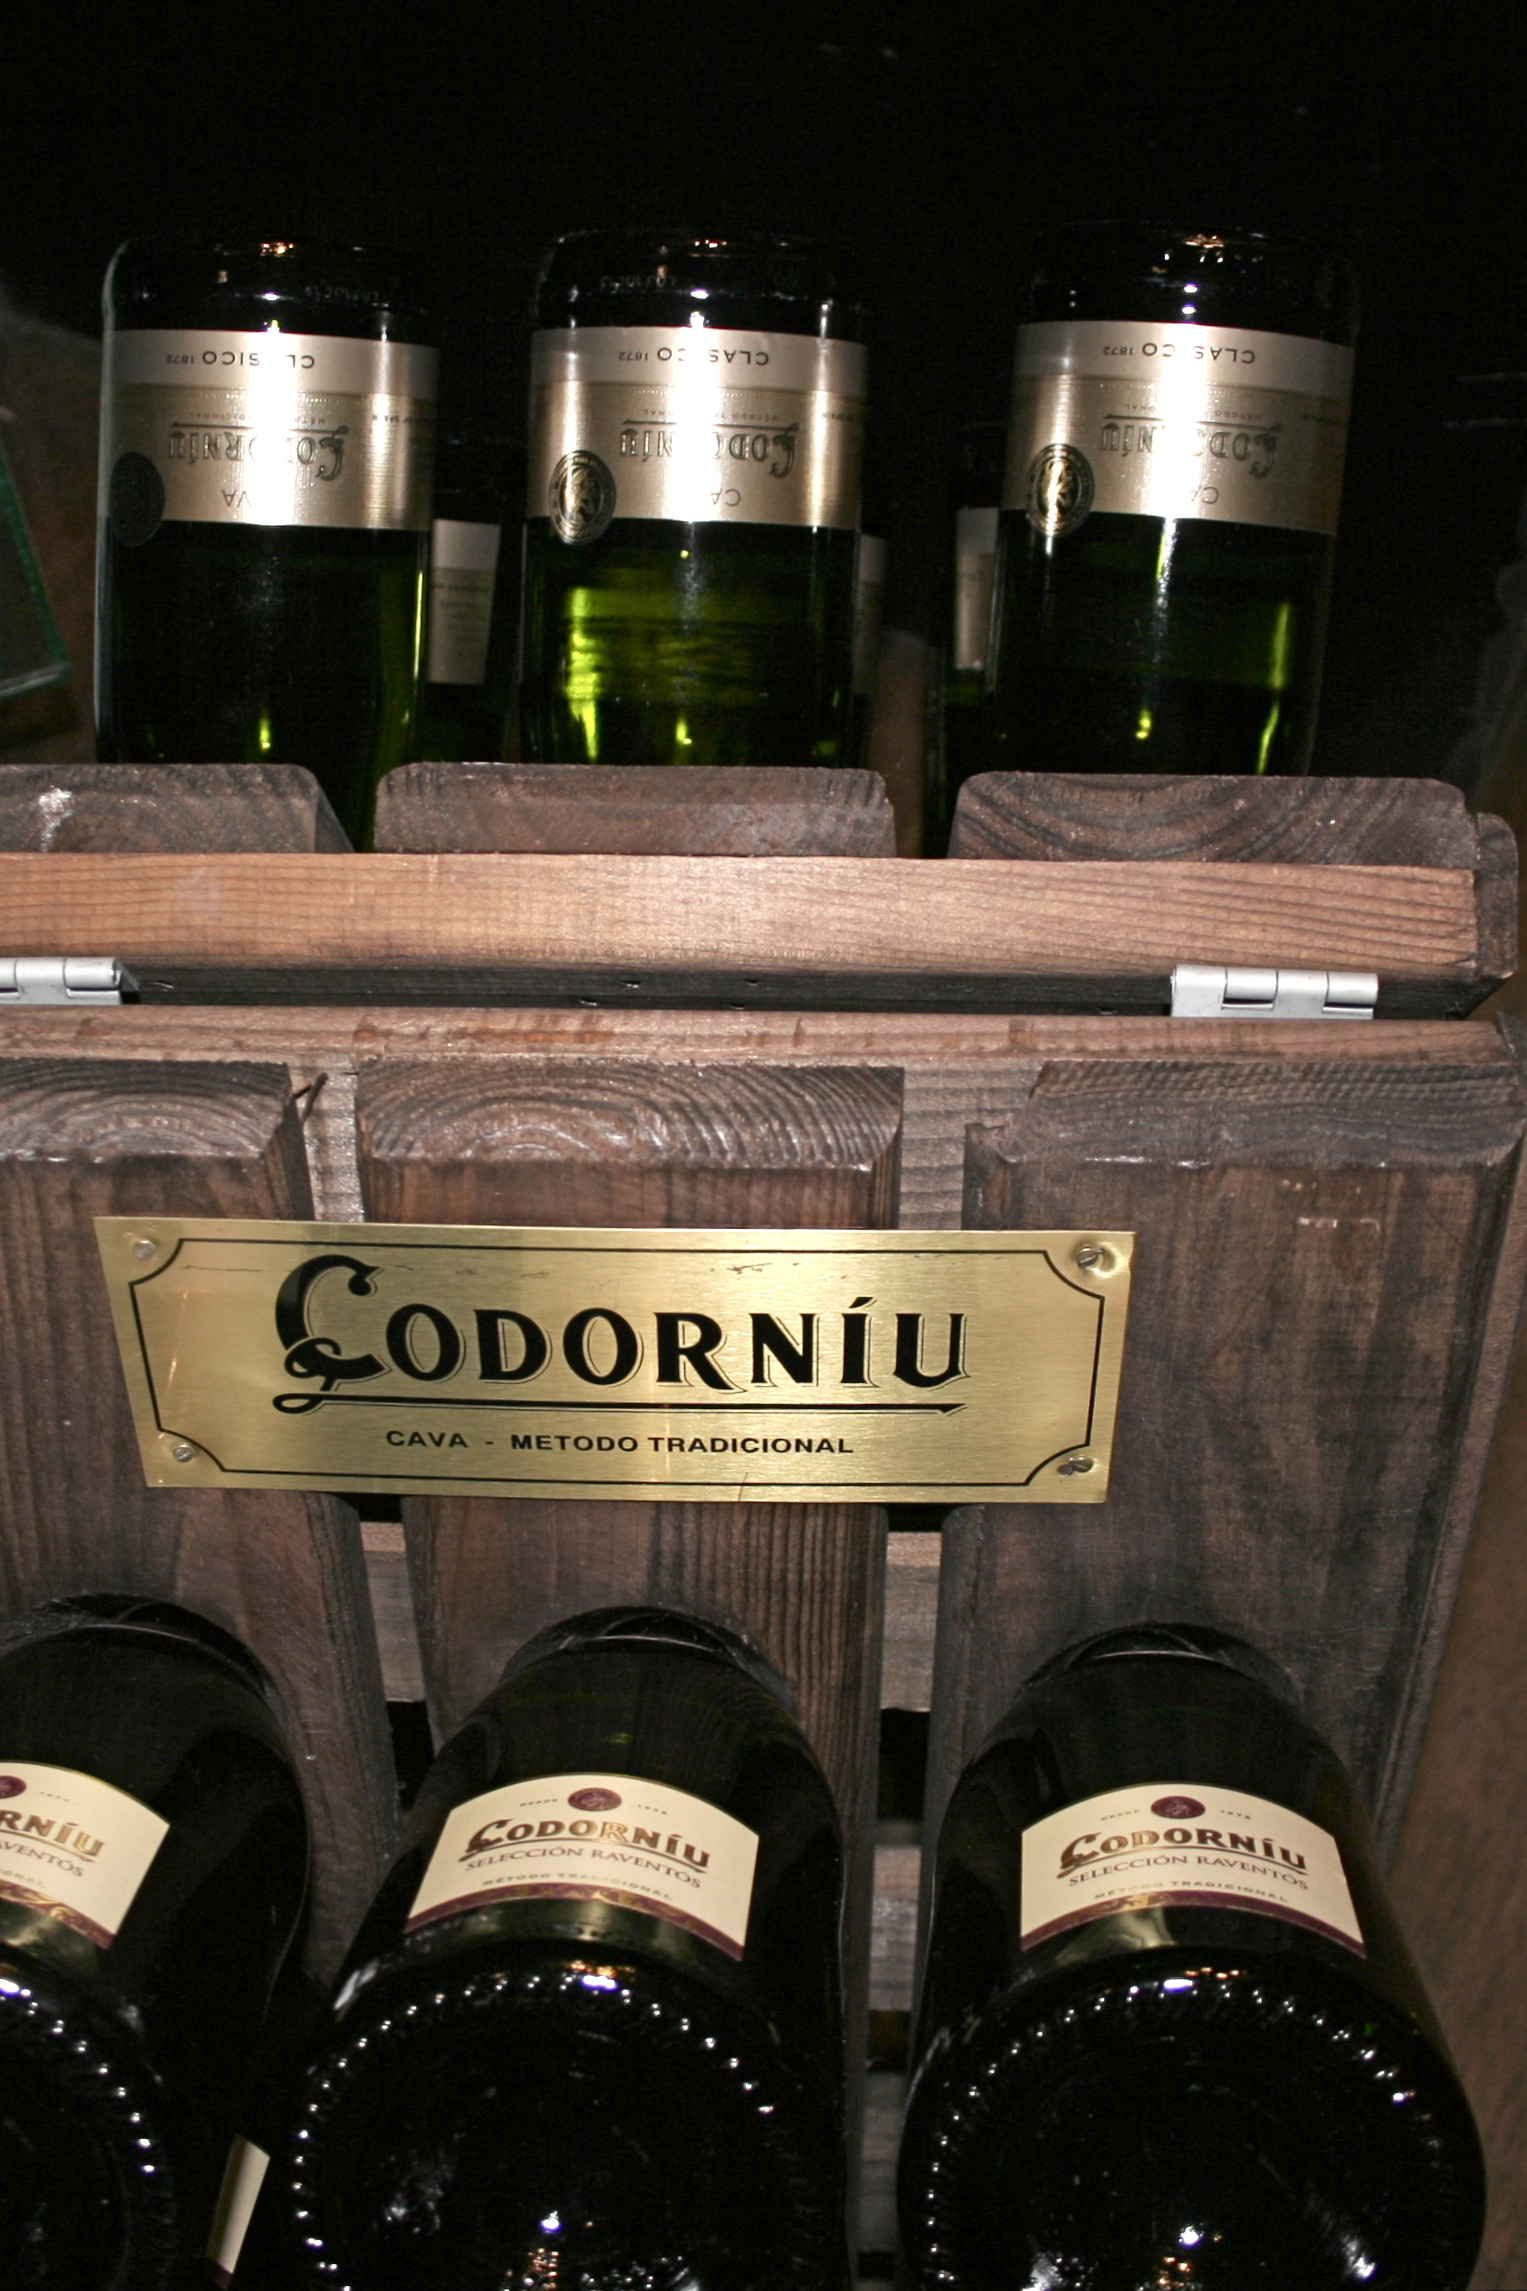 Bottles of cava made by Spanish family-owned company Codorniu